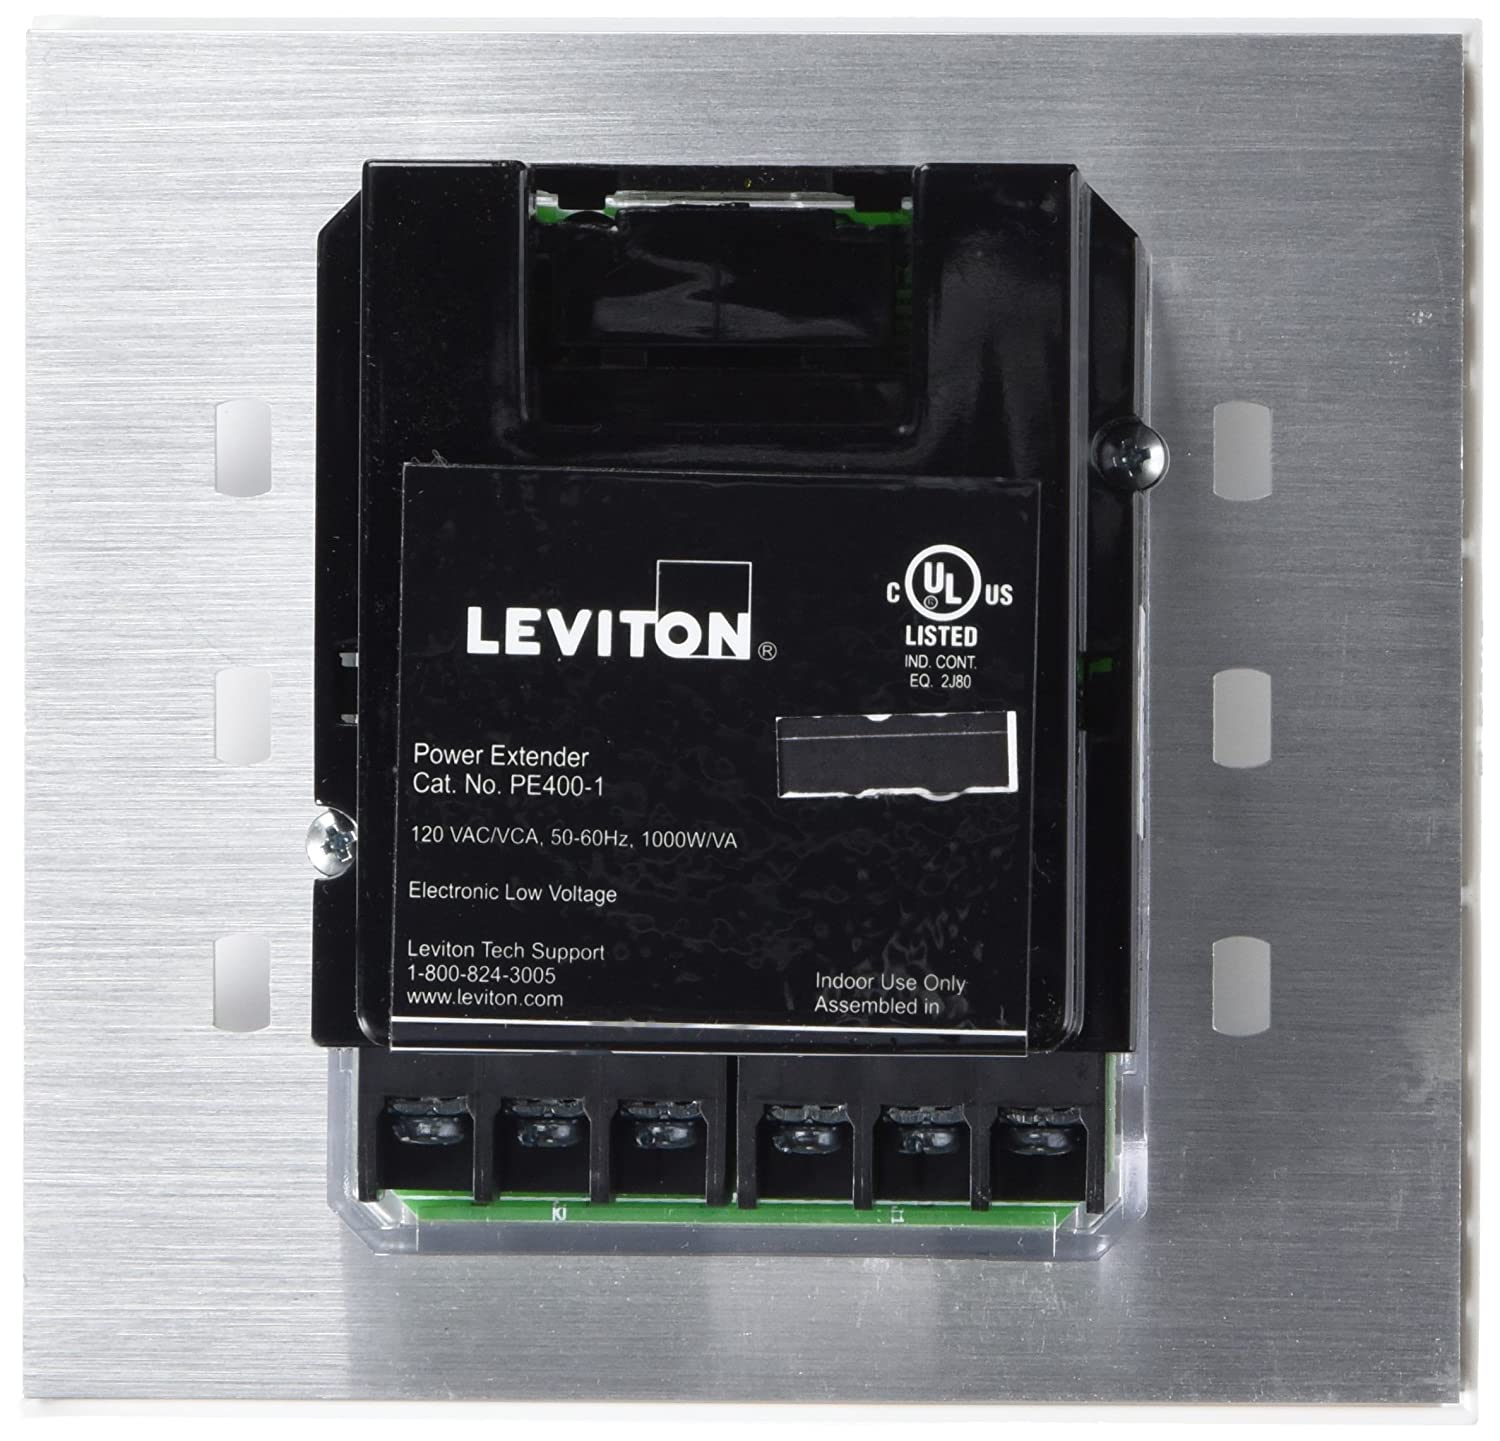 Amazon.com: Leviton PE400-10W Power Extender Electronic Low Voltage ...